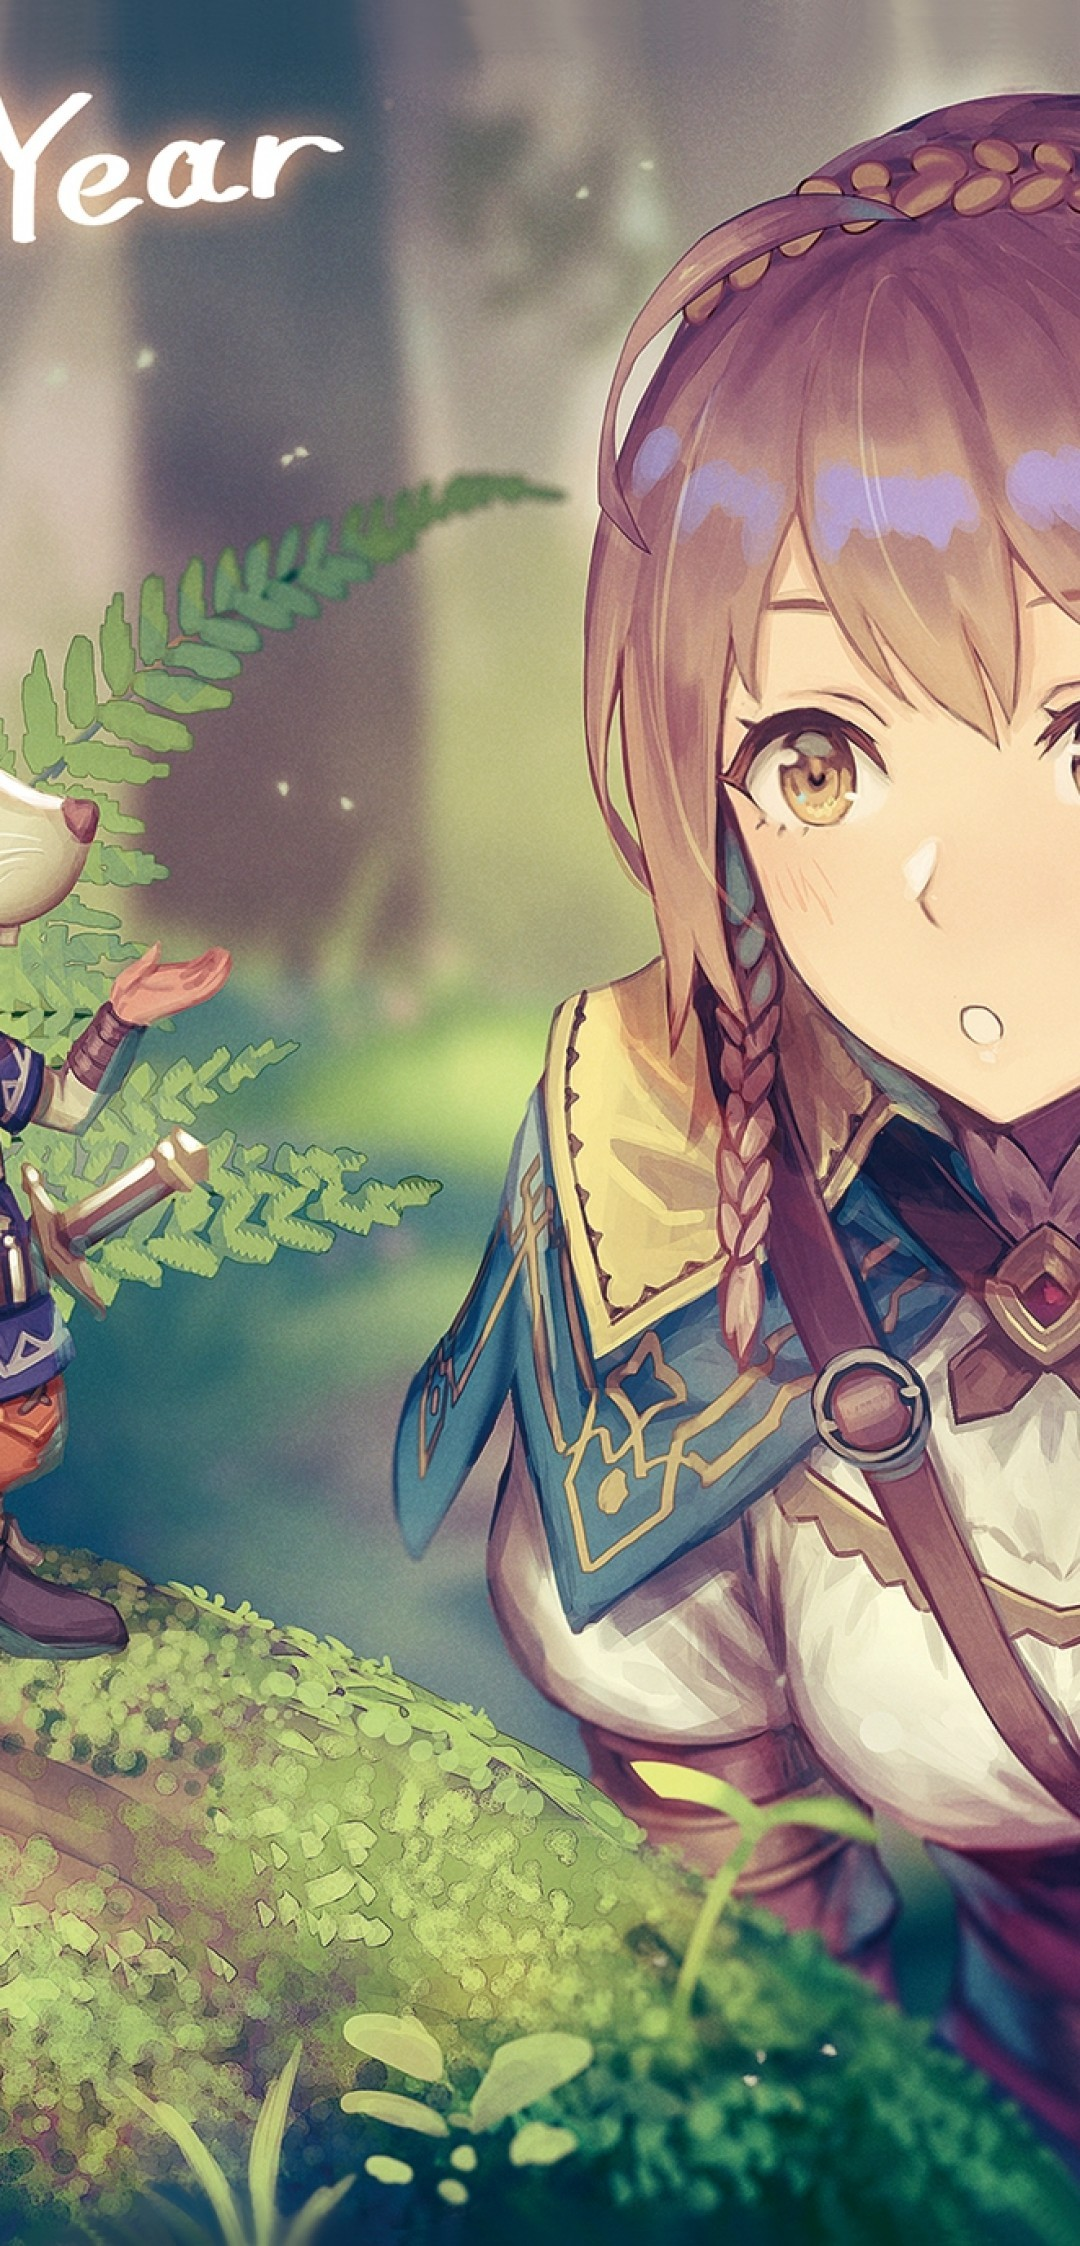 Download 1080x2246 Anime Girl Adventurer Forest Light Armor 1080x2246